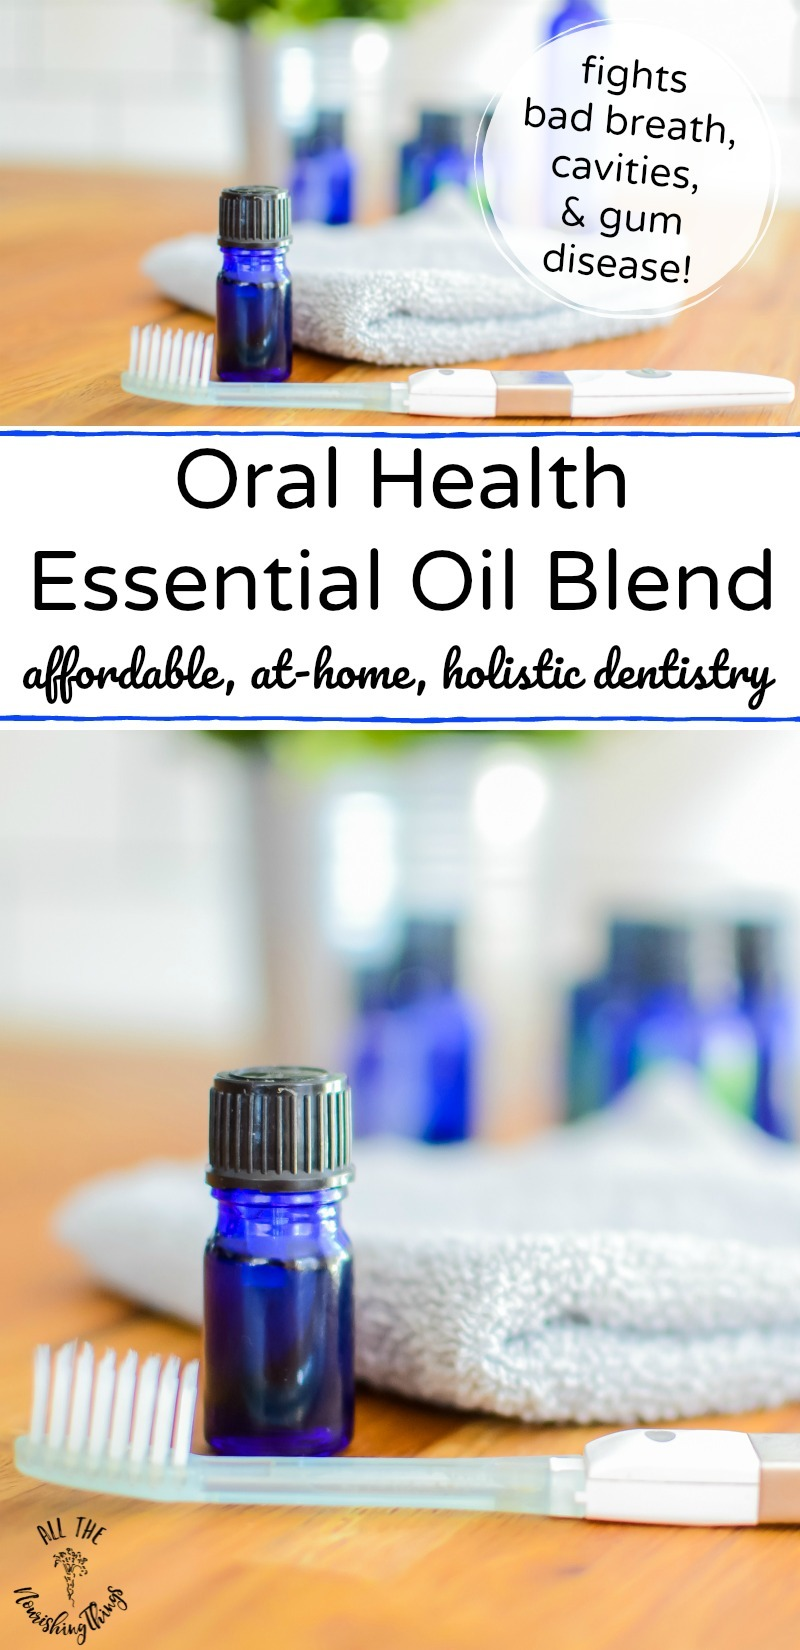 blue bottle of oral health essential oil blend with text overlay